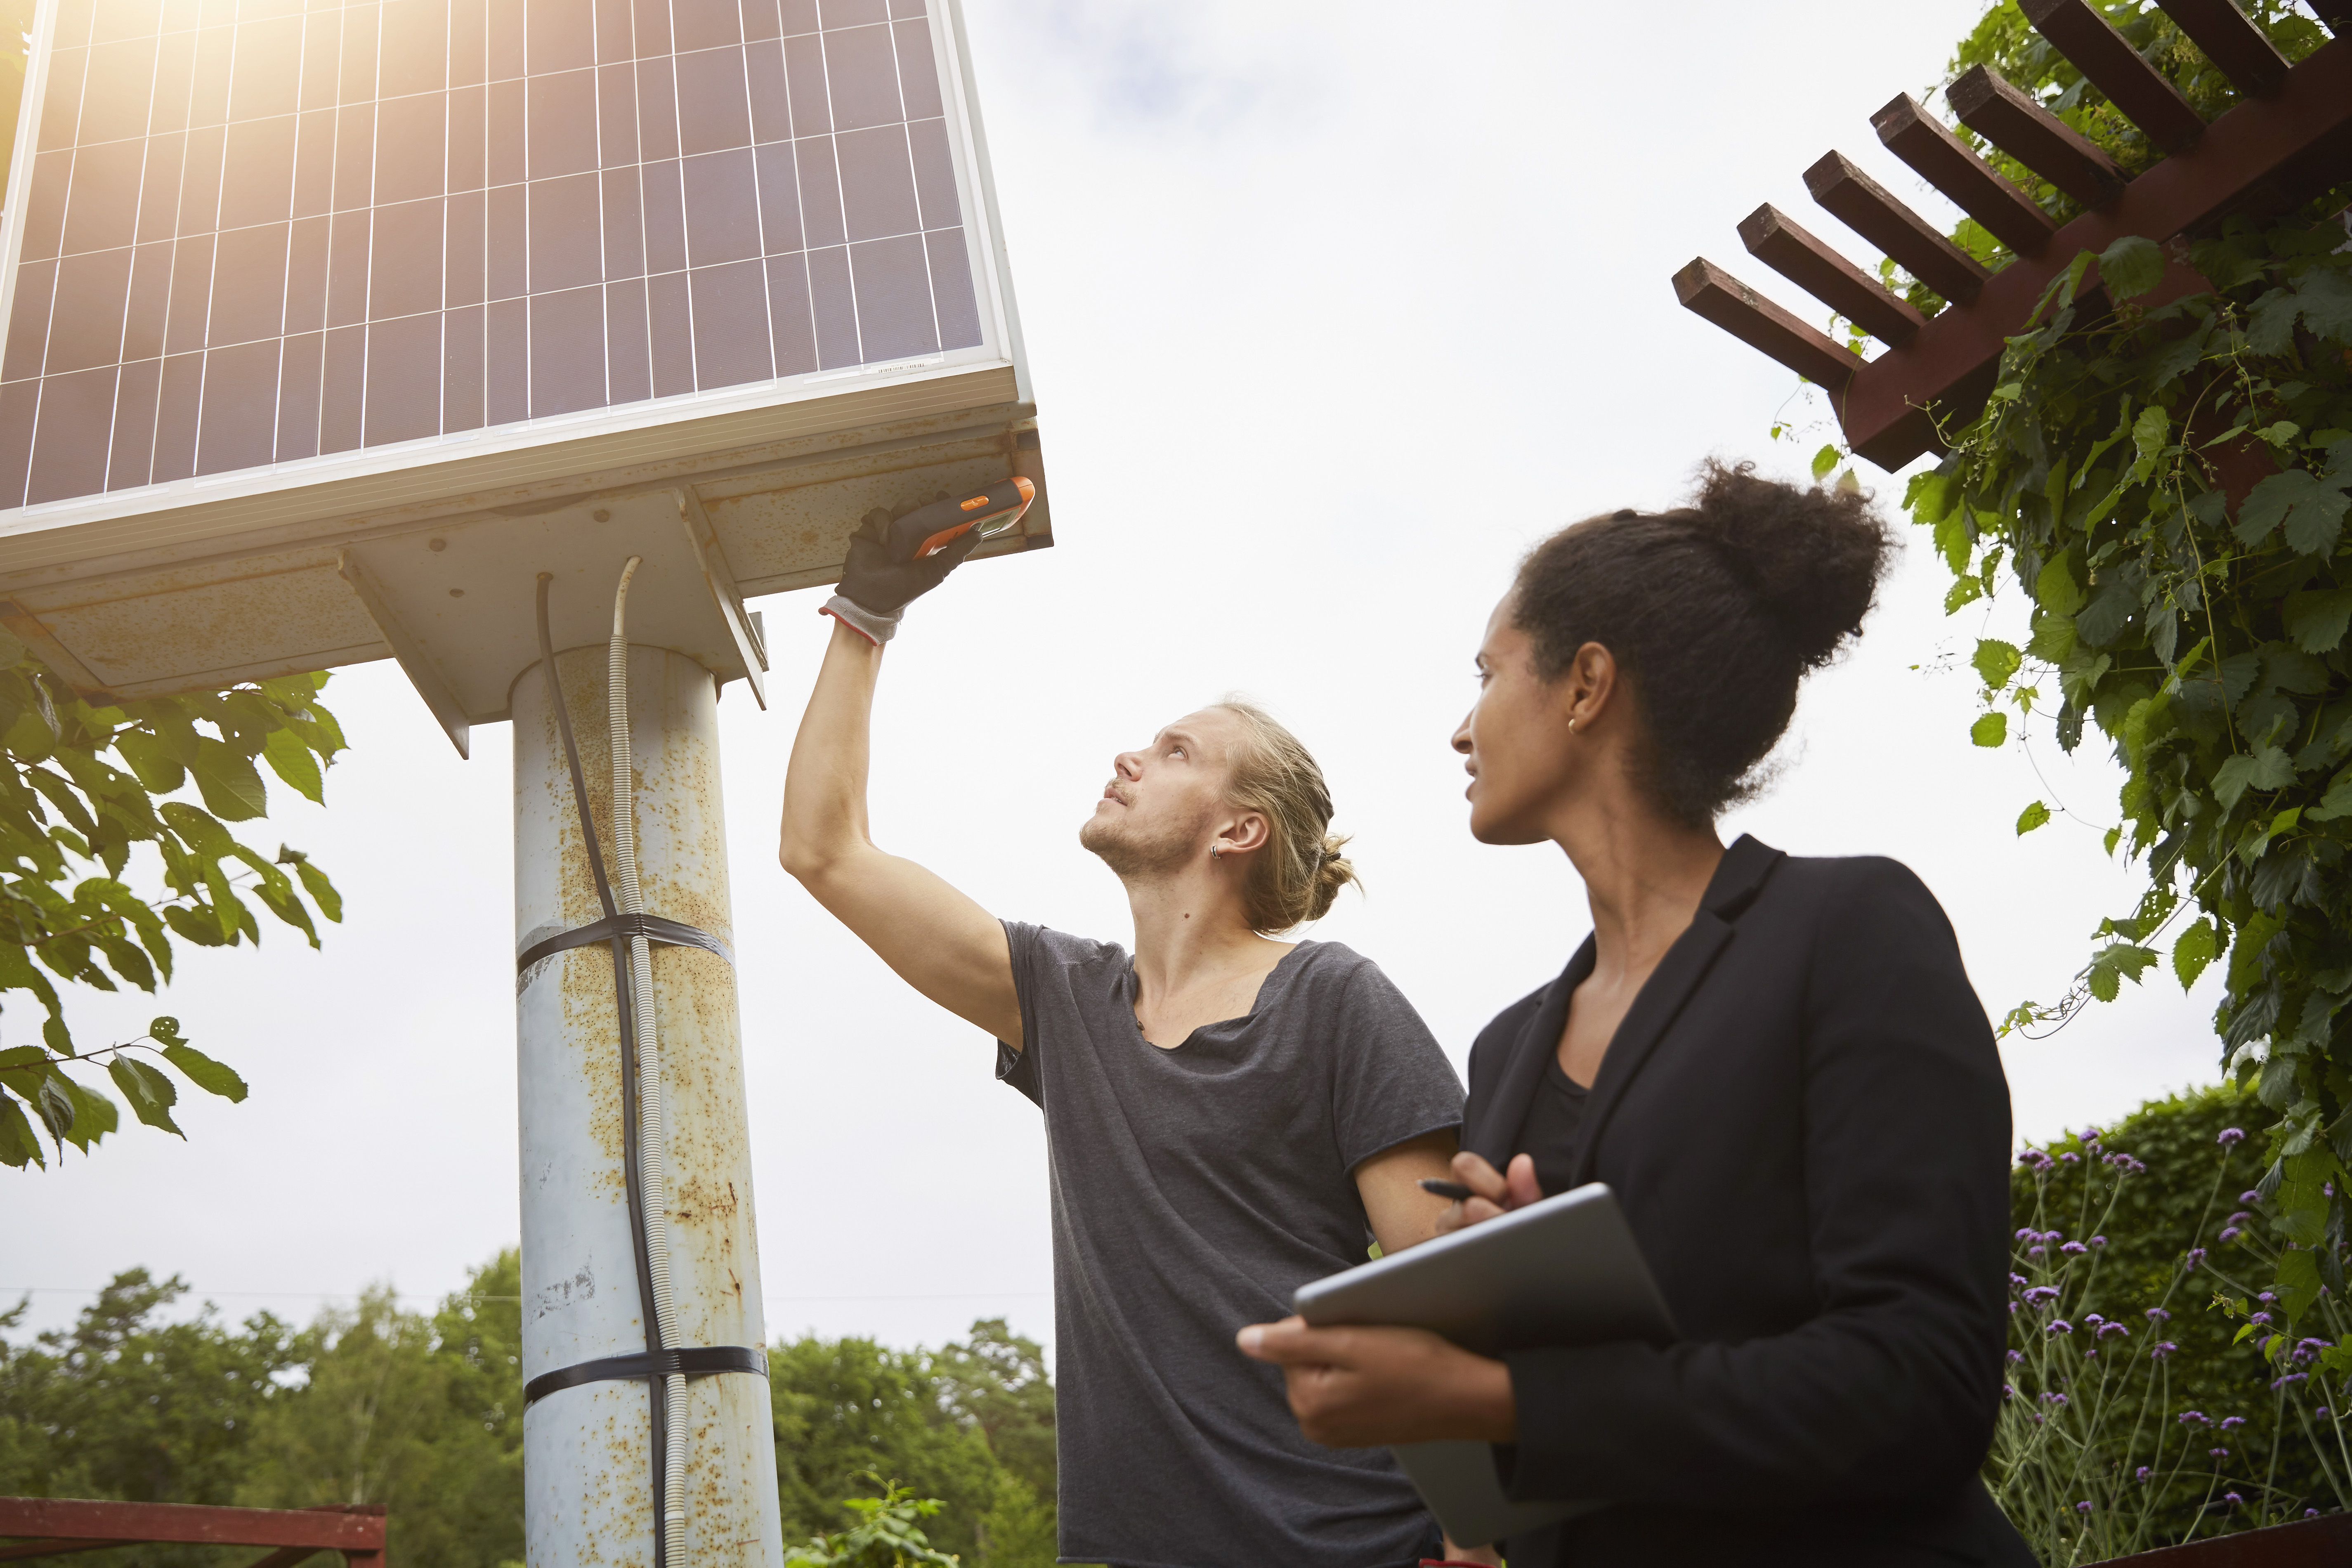 To recharge America's job market, build a green electric grid thumbnail